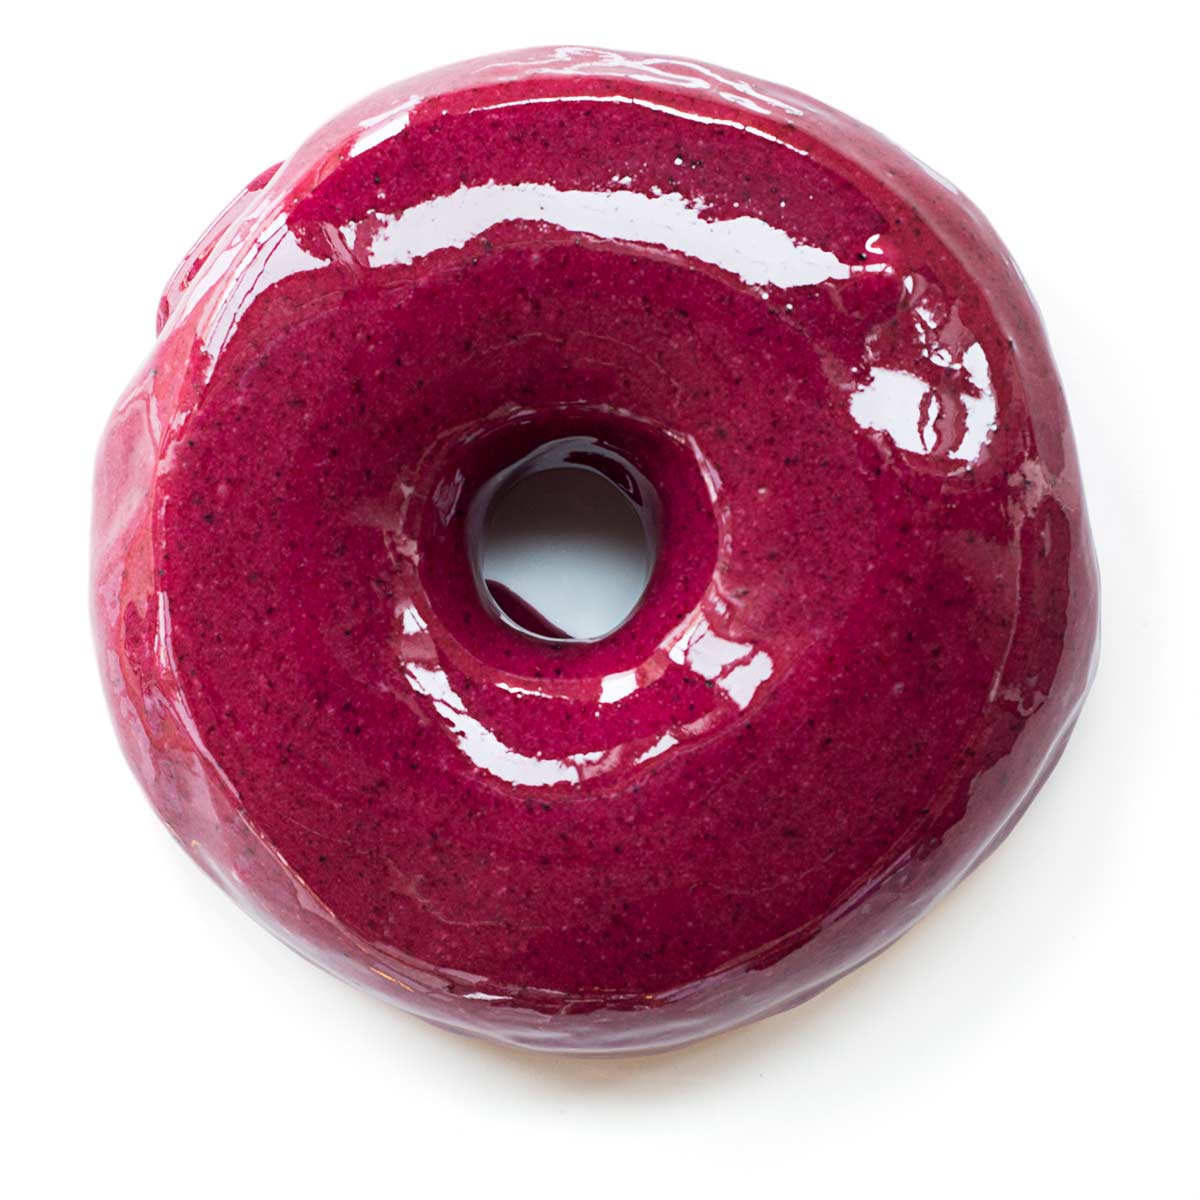 image of Blueberry Bourbon Basil courtesy of Blue Star Donuts